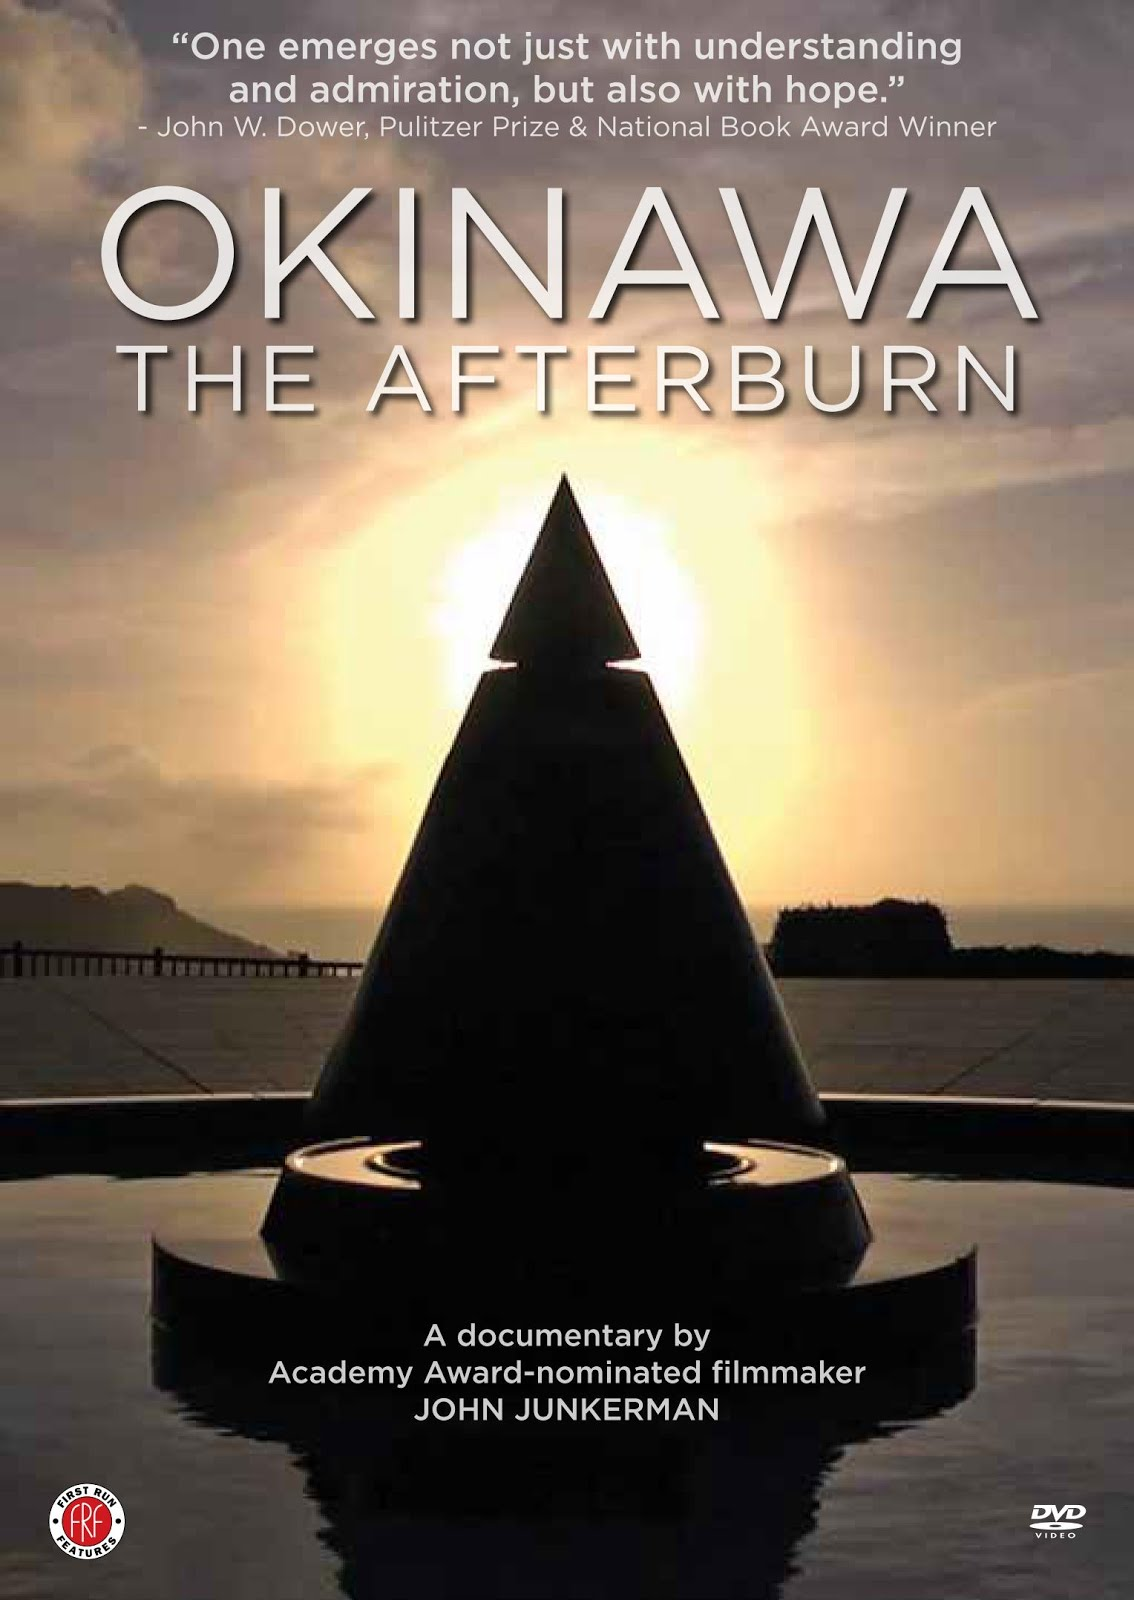 John Junkerman's award-winning film Okinawa: The Afterburn